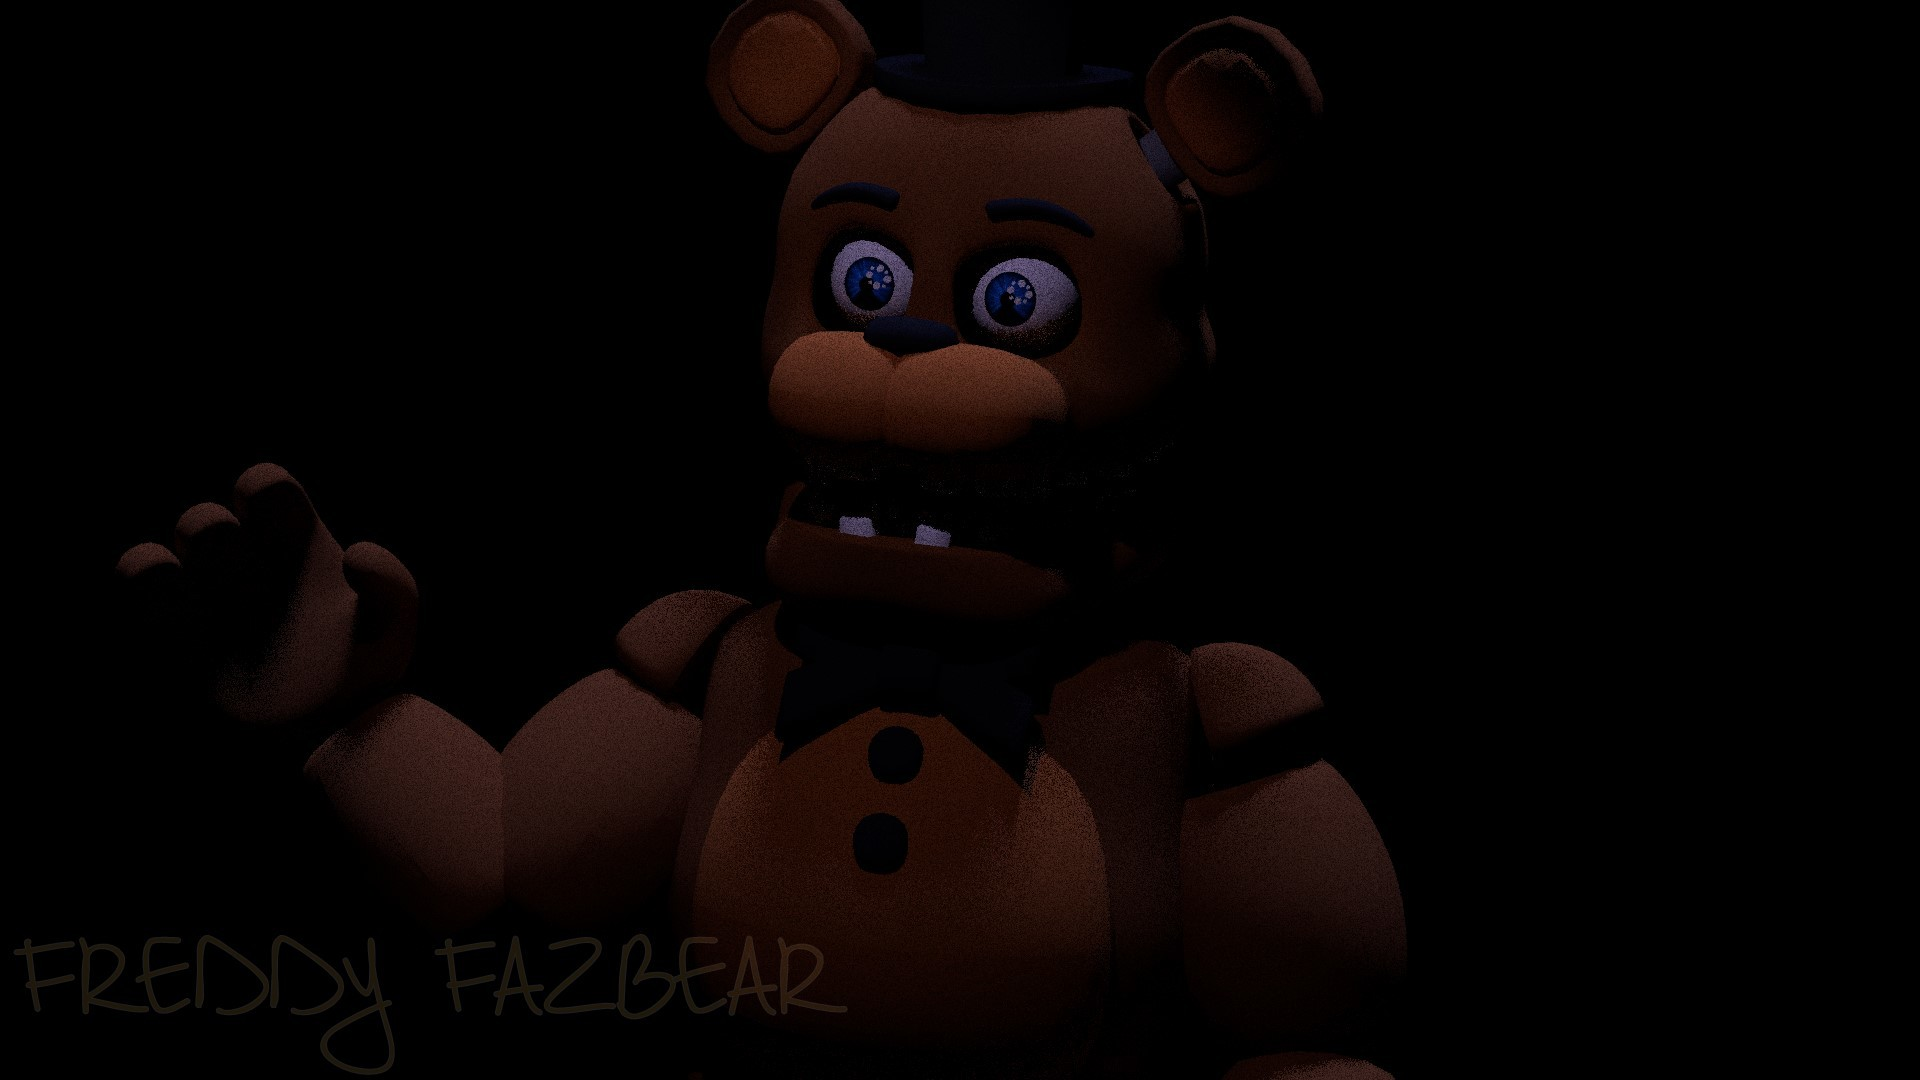 Freddy Fazbear Wallpapers (73+ pictures)